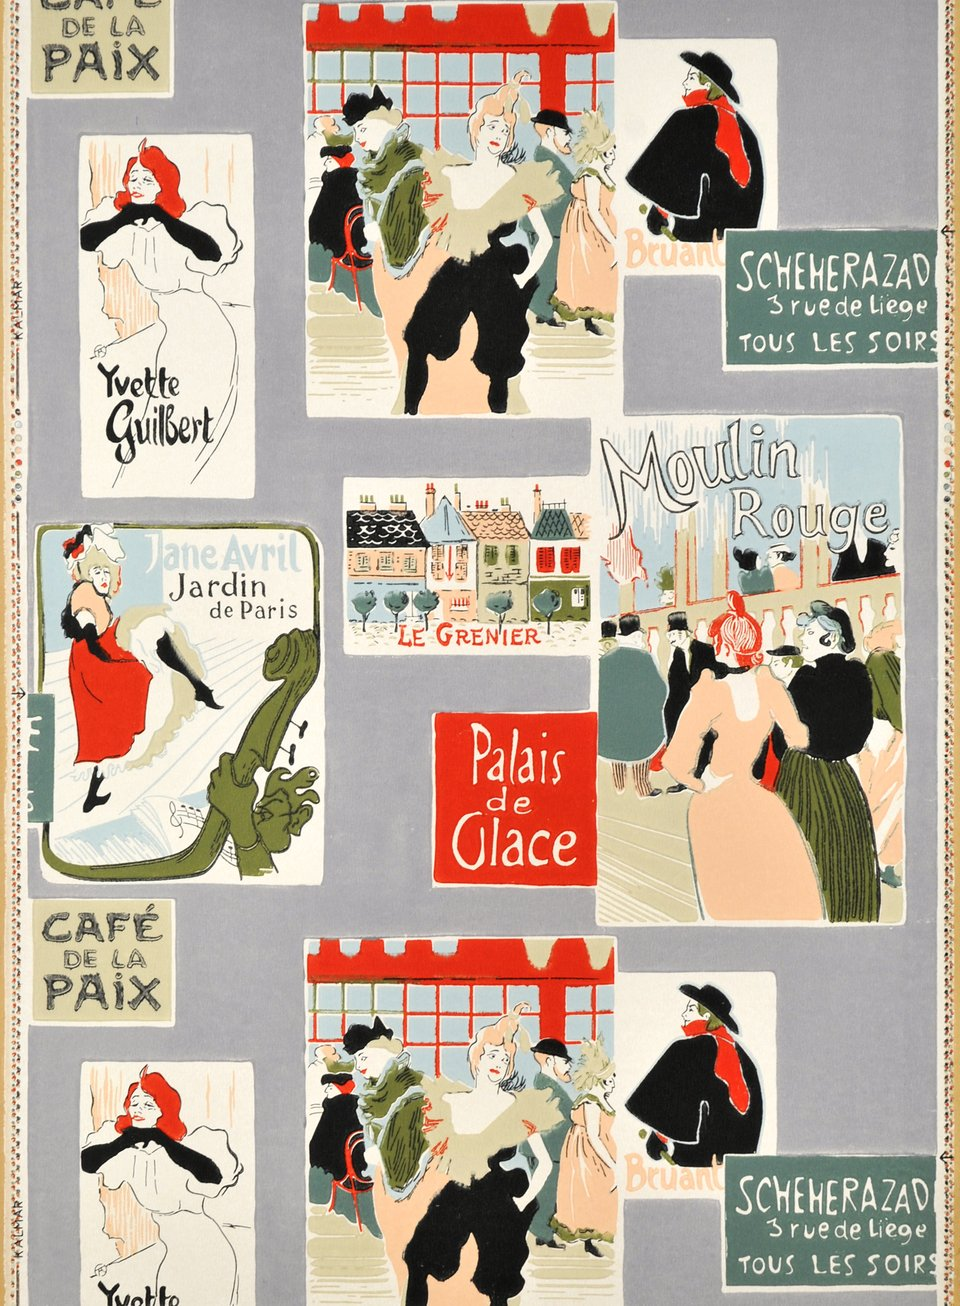 Moulin Rouge – Affiche ancienne – Henri DE TOULOUSE LAUTREC – 1955